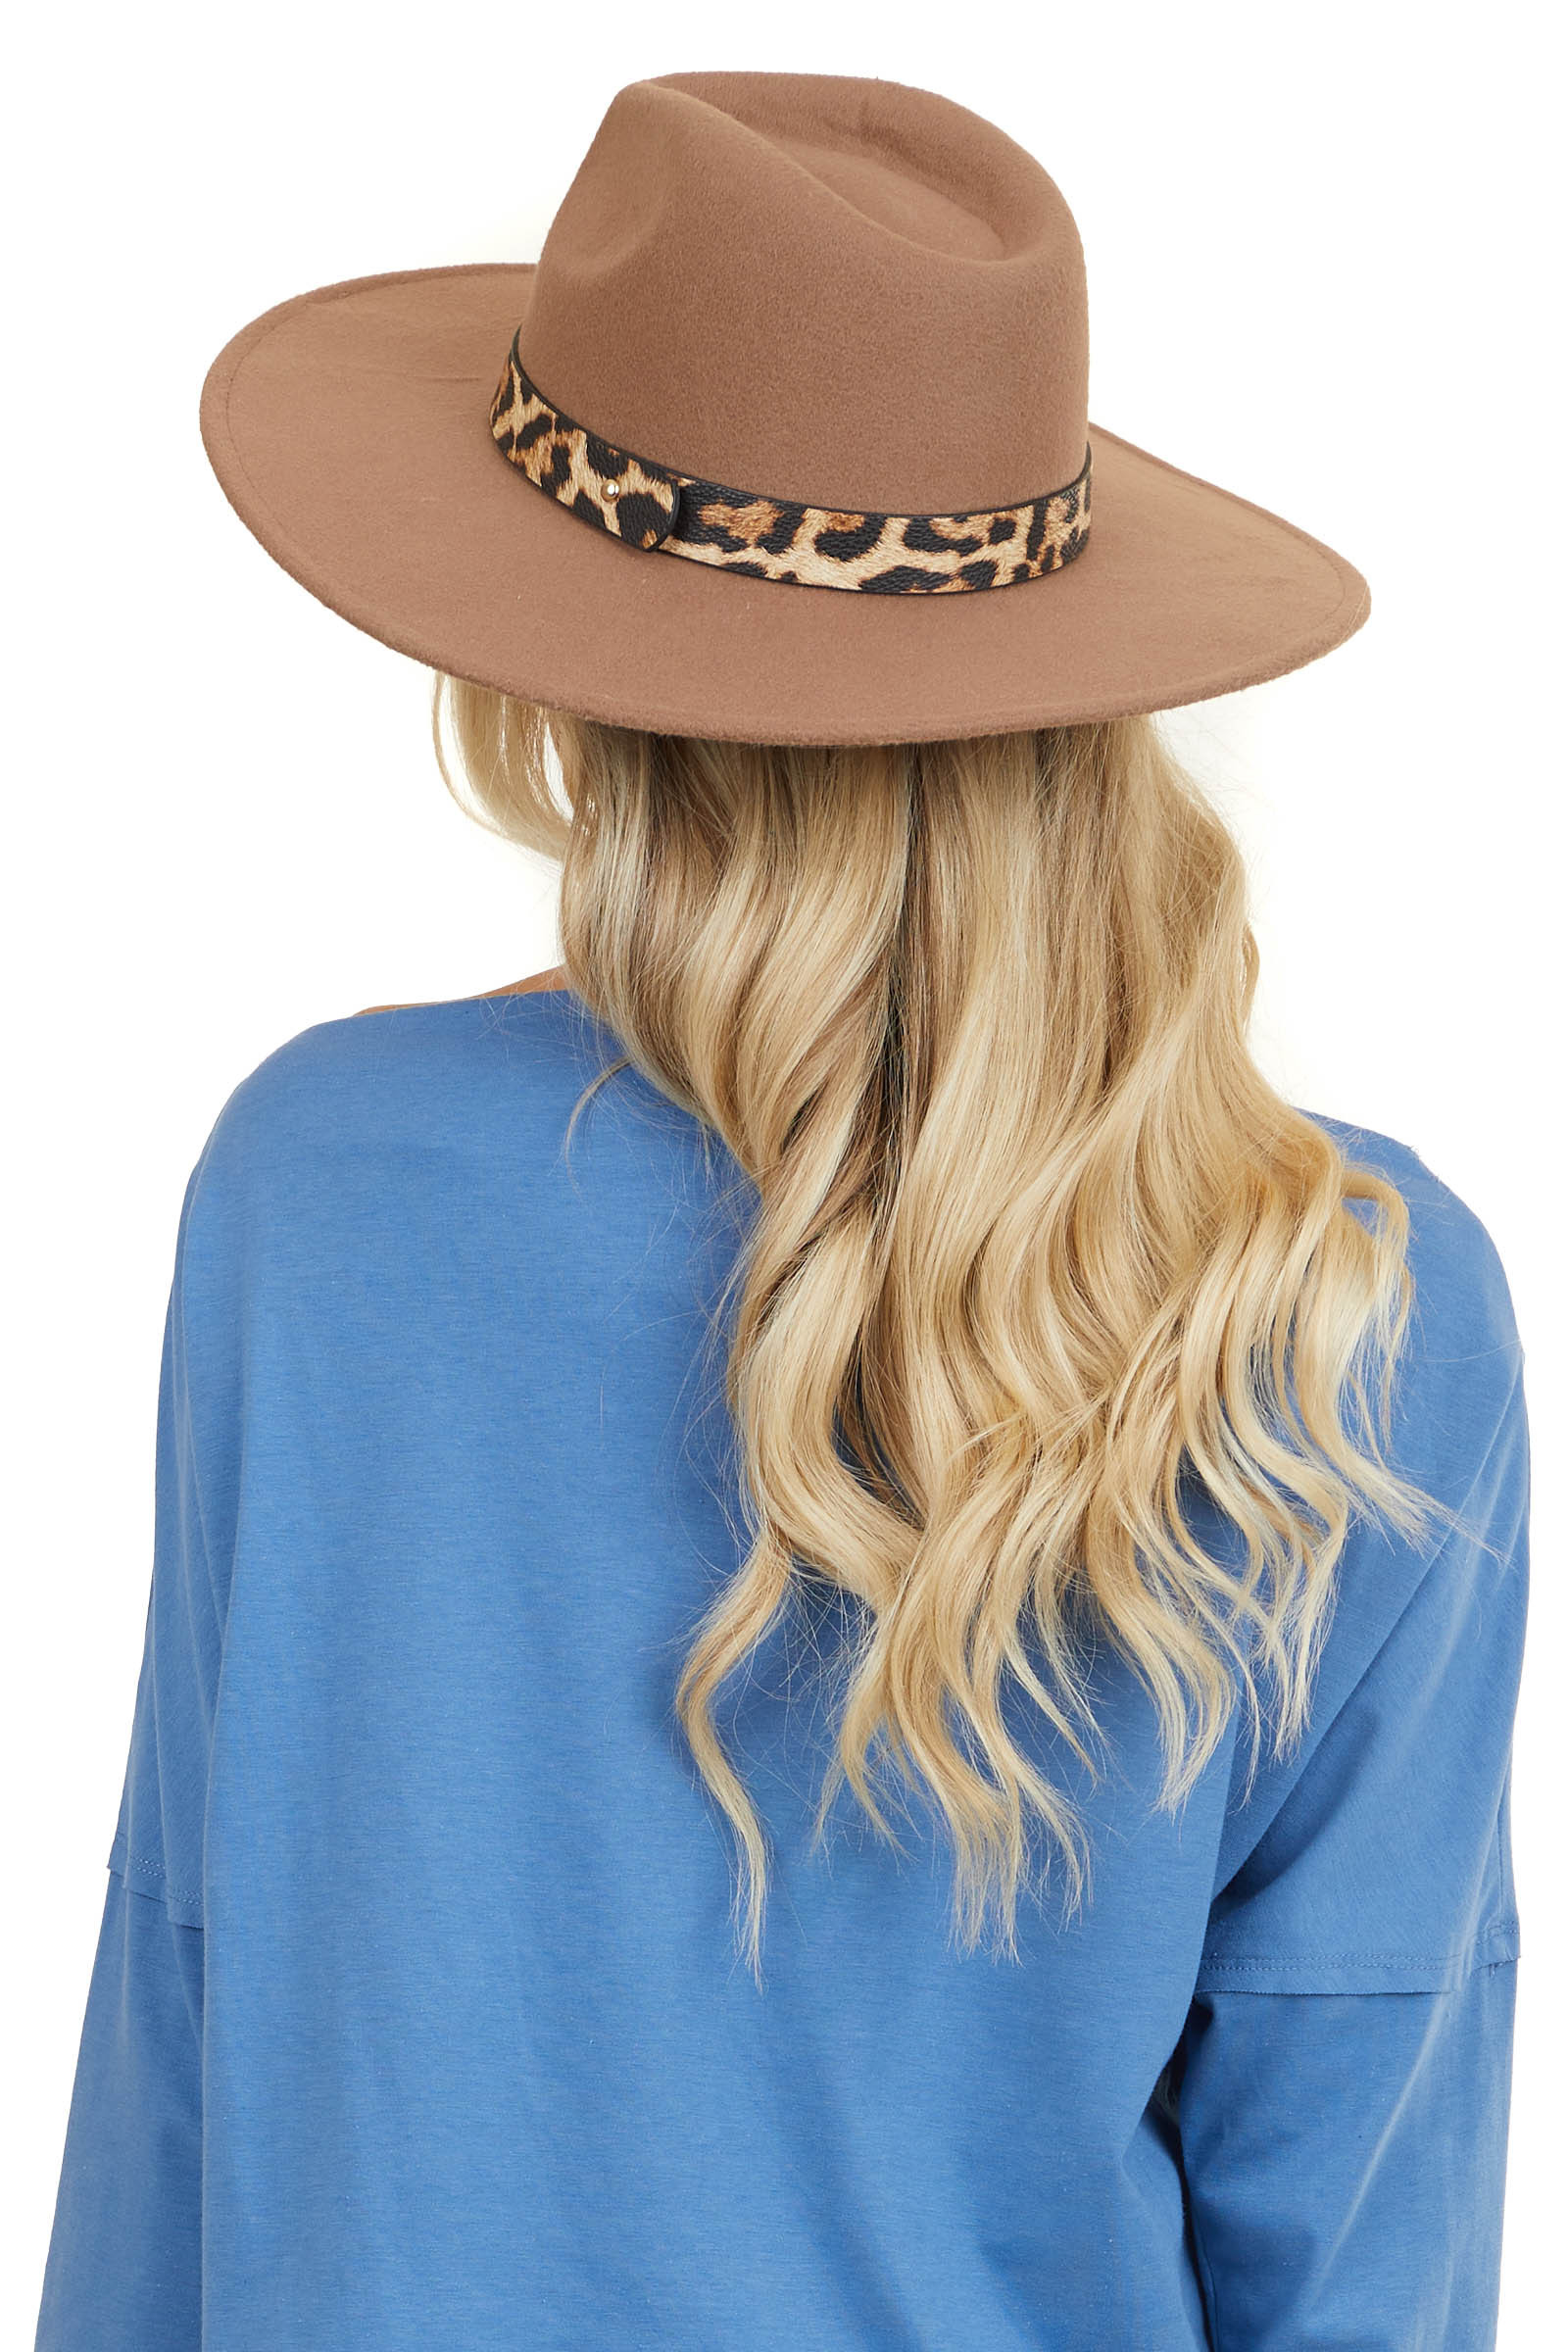 Cognac Faux Wool Wide Brim Hat with Leopard Print Trim